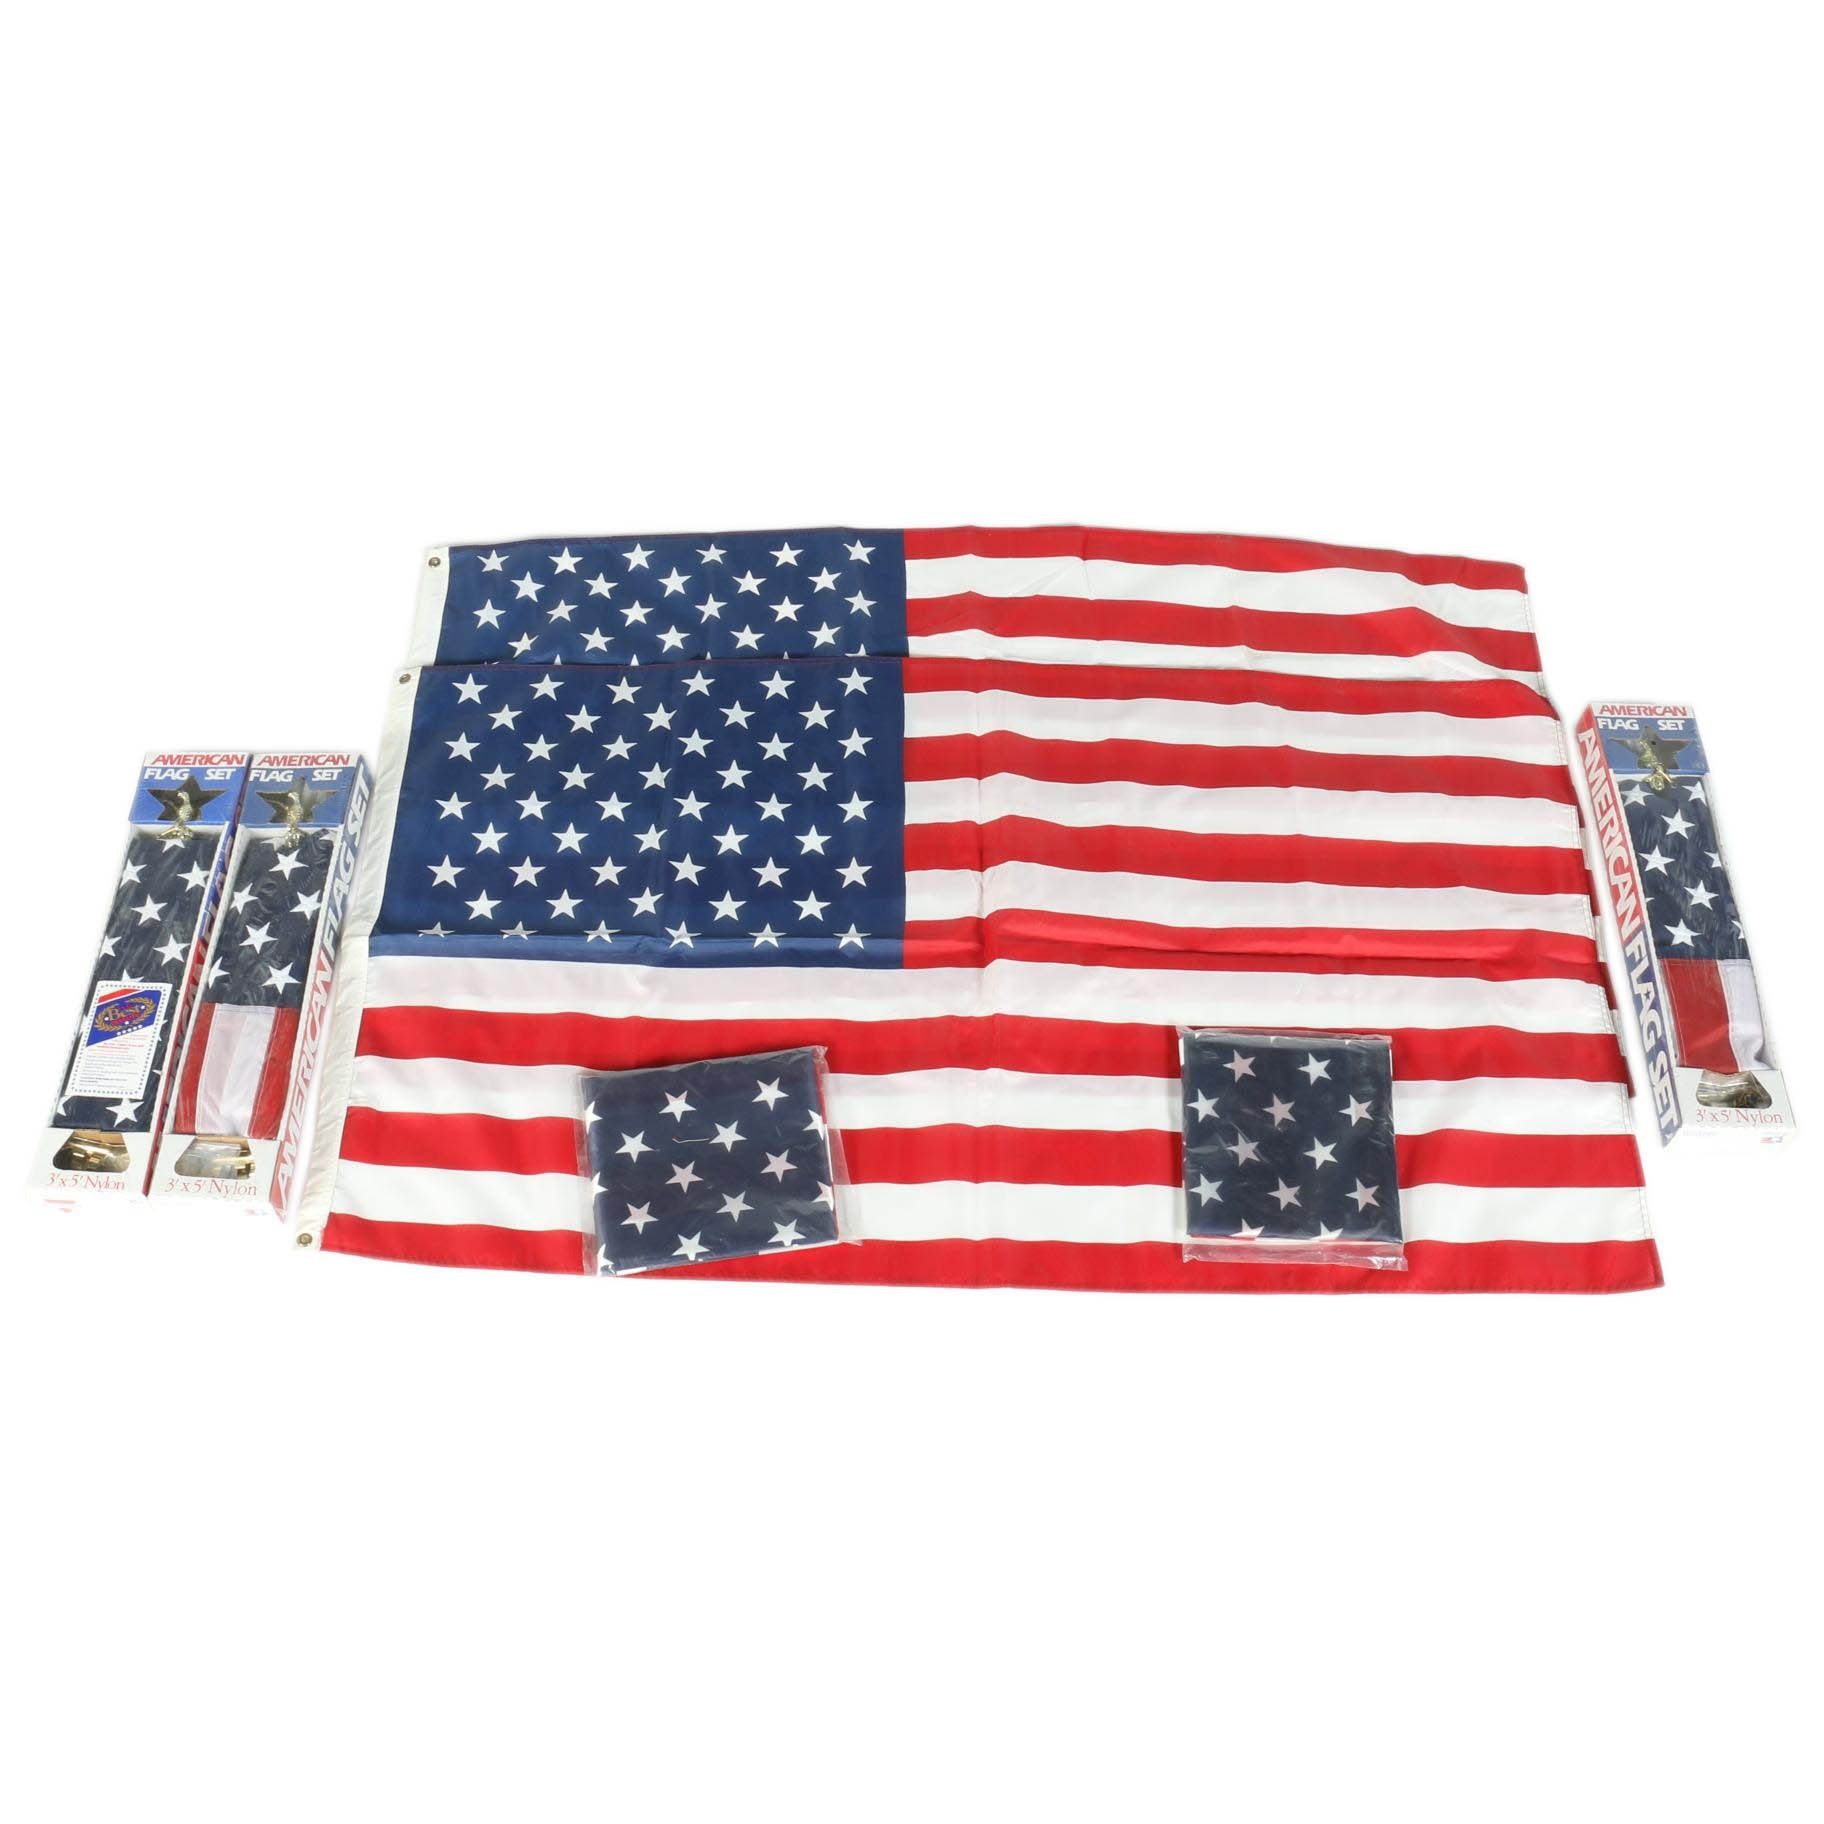 American Flags Including Poles and Mounts